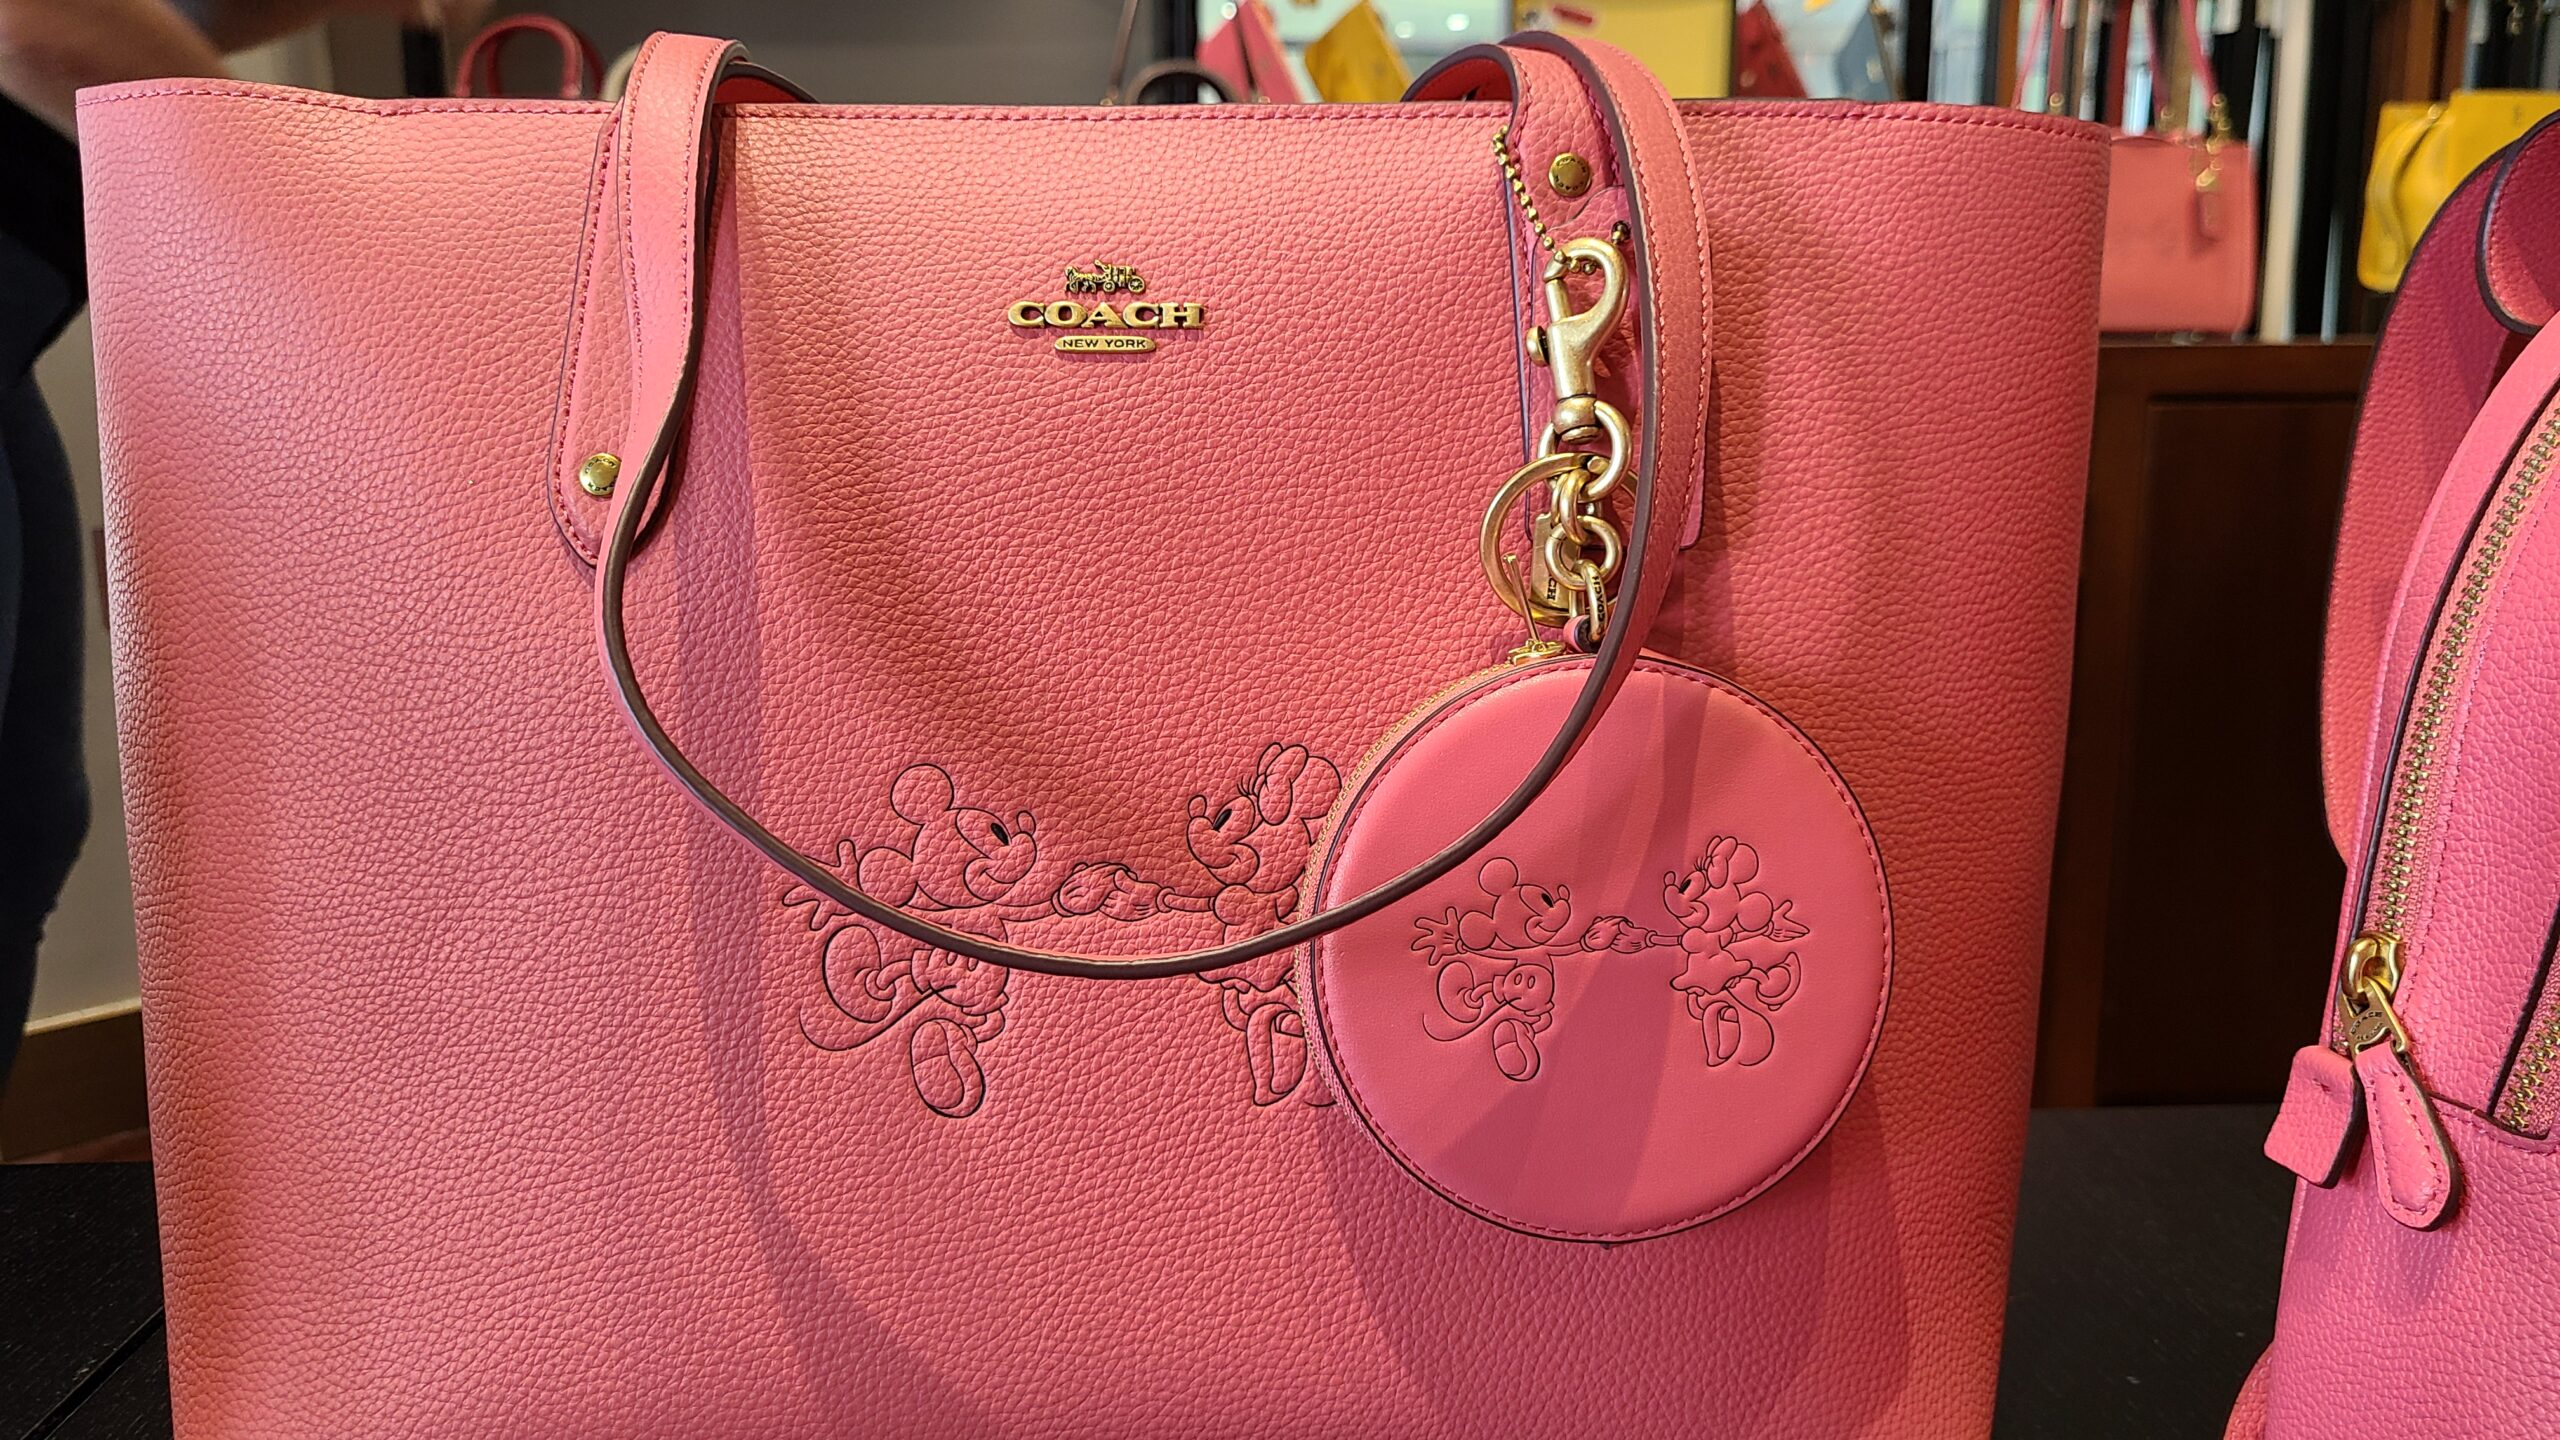 New Mickey & Minnie Coach Collection spotted at Disney Springs 6